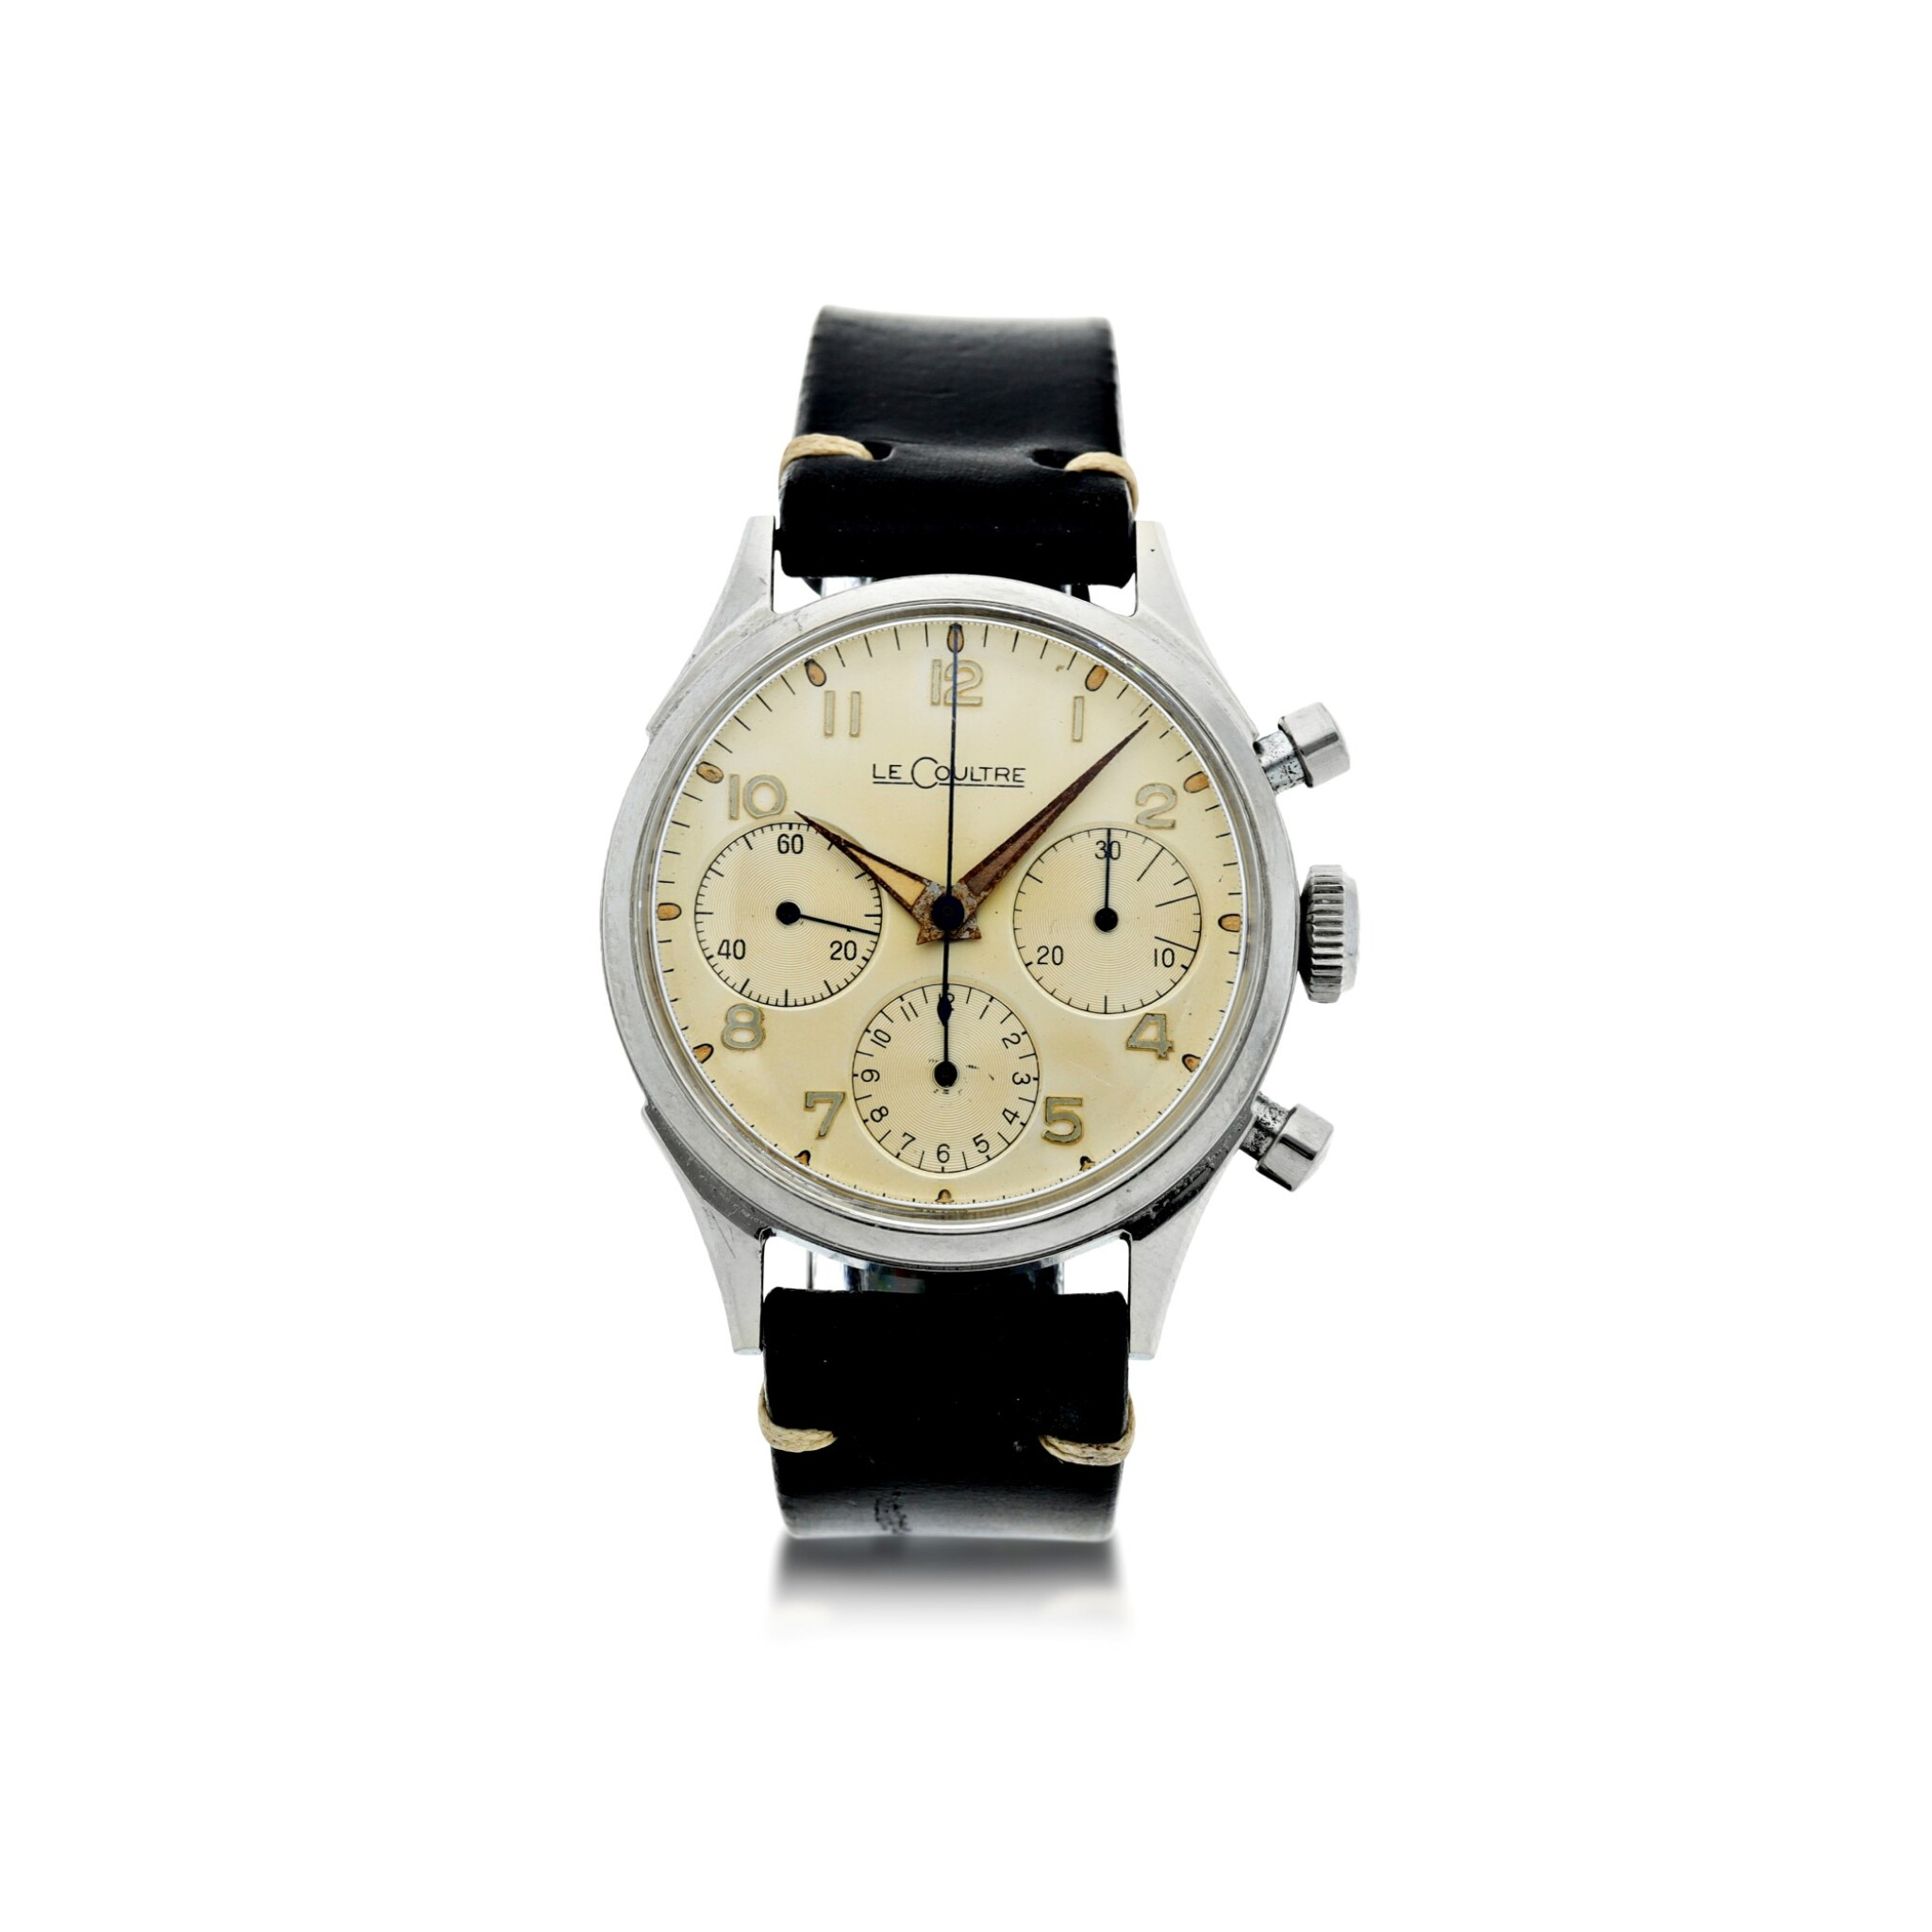 View full screen - View 1 of Lot 72. VALJOUX 72  A STAINLESS STEEL CHRONOGRAPH WRISTWATCH, ORIGINALLY OWNED BY NASA ASTRONAUT, WALTER 'WALLY' M. SCHIRRA, CIRCA 1950.